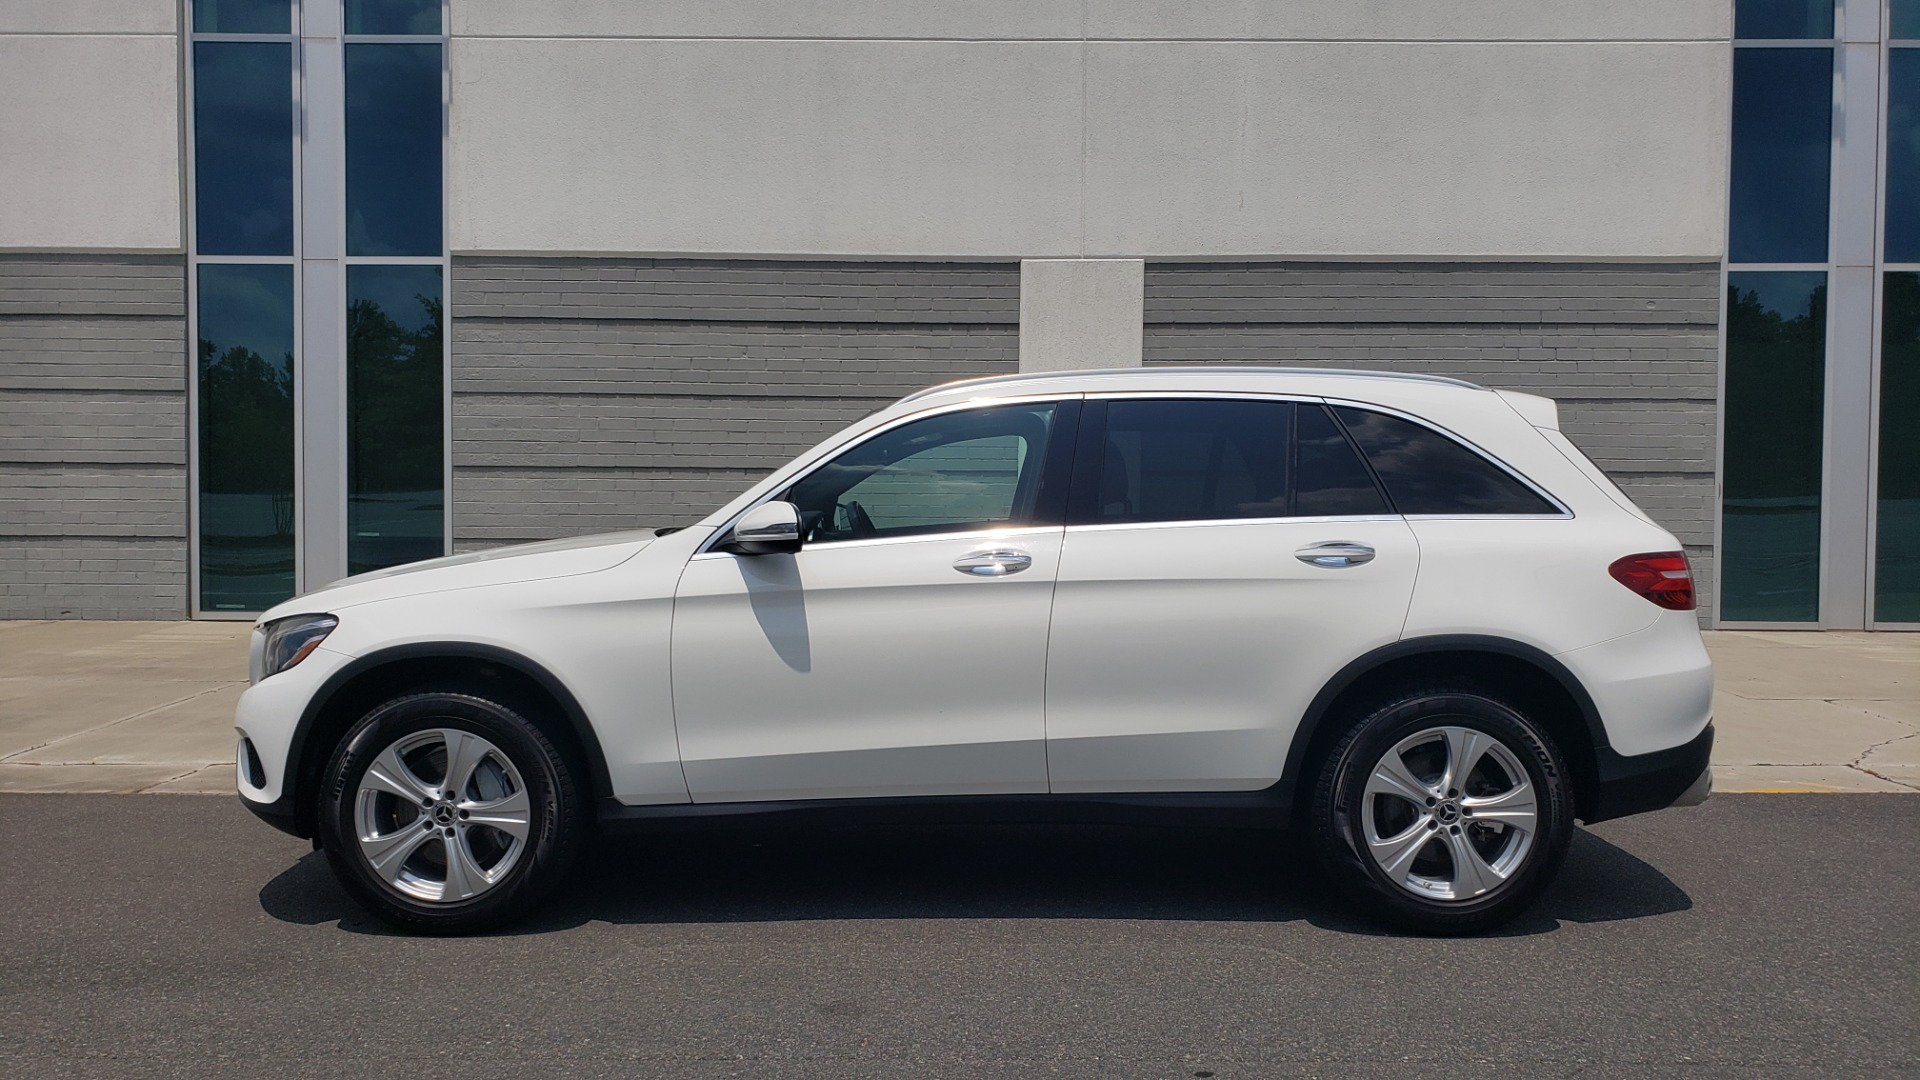 Used 2018 Mercedes-Benz GLC 300 PREMIUM 4MATIC / PANO-ROOF / BURMESTER / REARVIEW for sale $36,295 at Formula Imports in Charlotte NC 28227 5